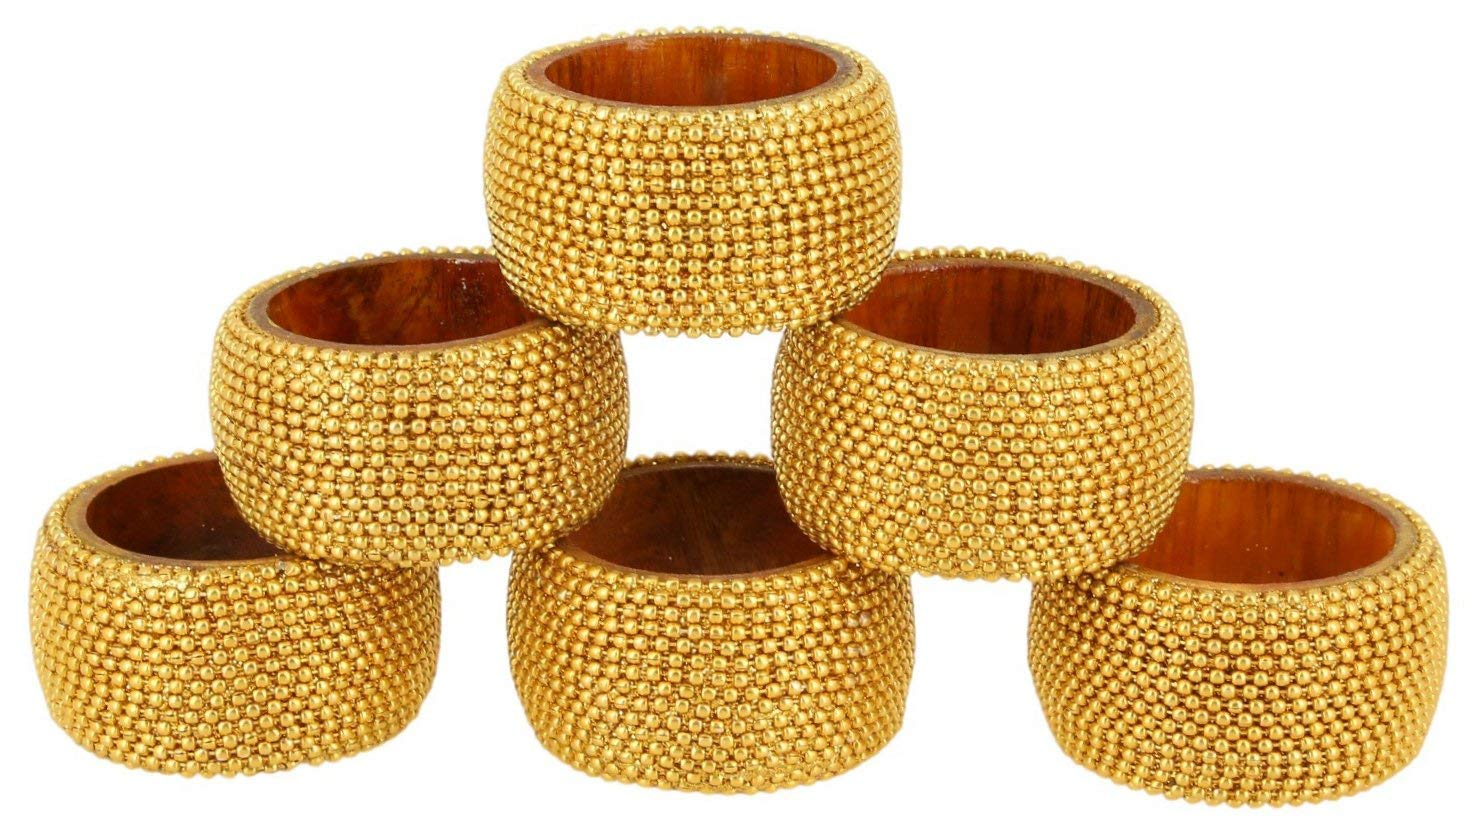 ShalinIndia Handmade Indian Gold Aluminum Ball Chain Wooden Napkin Ring Set - Set of 6 Napkin Rings - Industrial Chic Look - Made in India